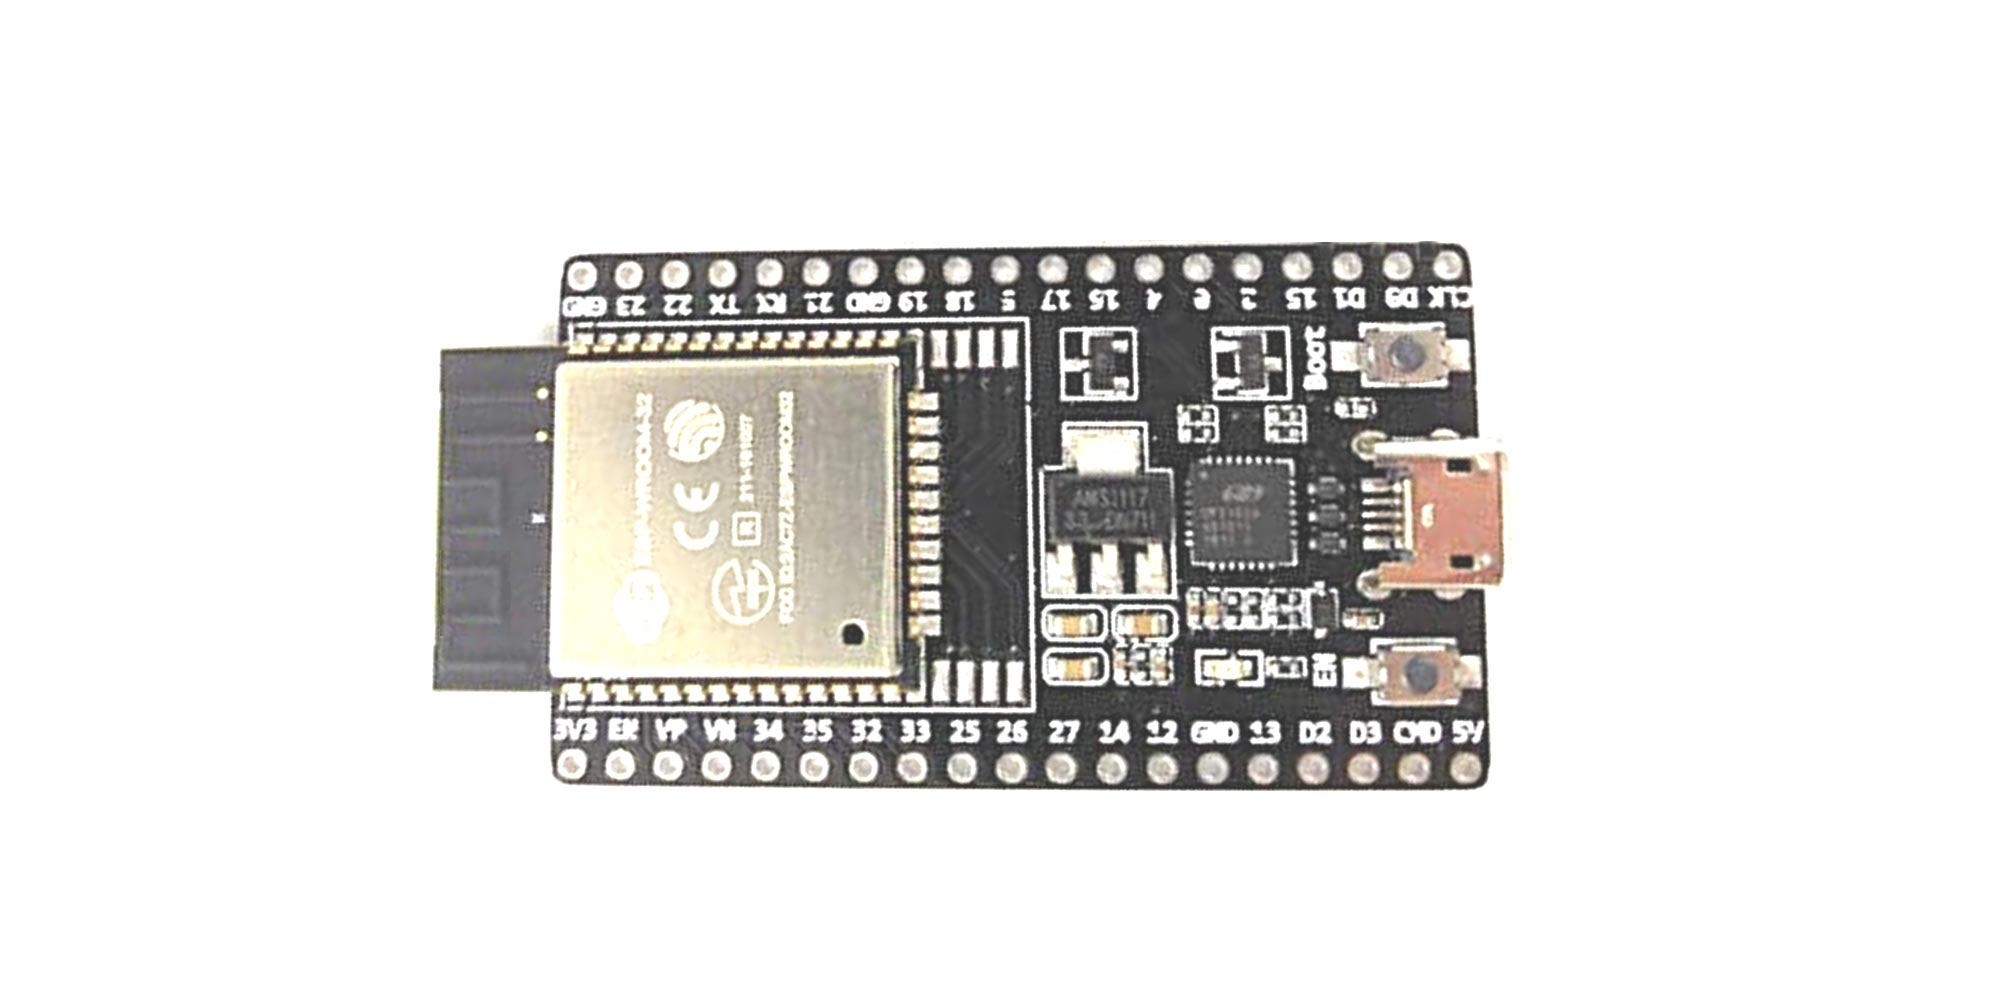 ESP32 DevKitC Pinout, Overview, Features & Datasheet